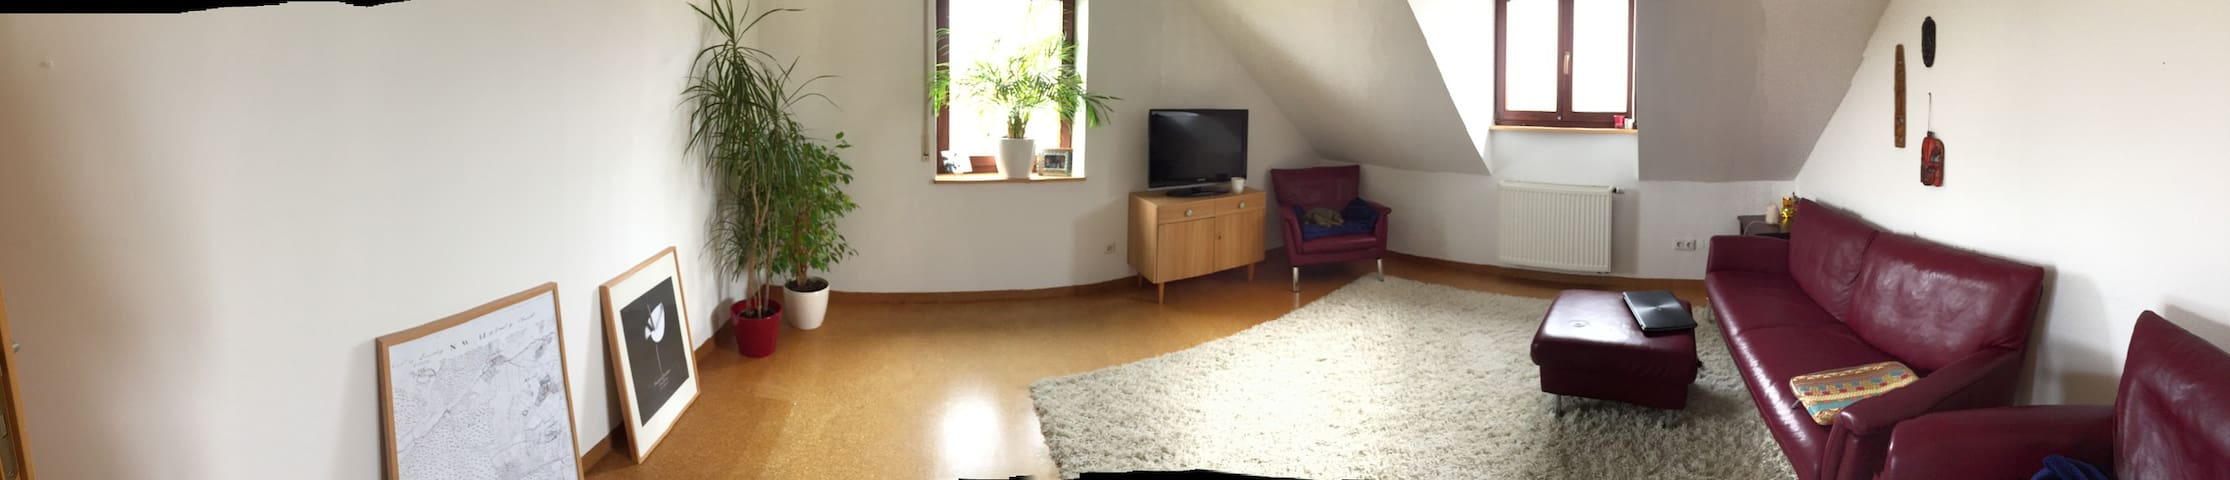 Living in a small village 5 min. from Hilpoltstein - Hilpoltstein - Apartamento